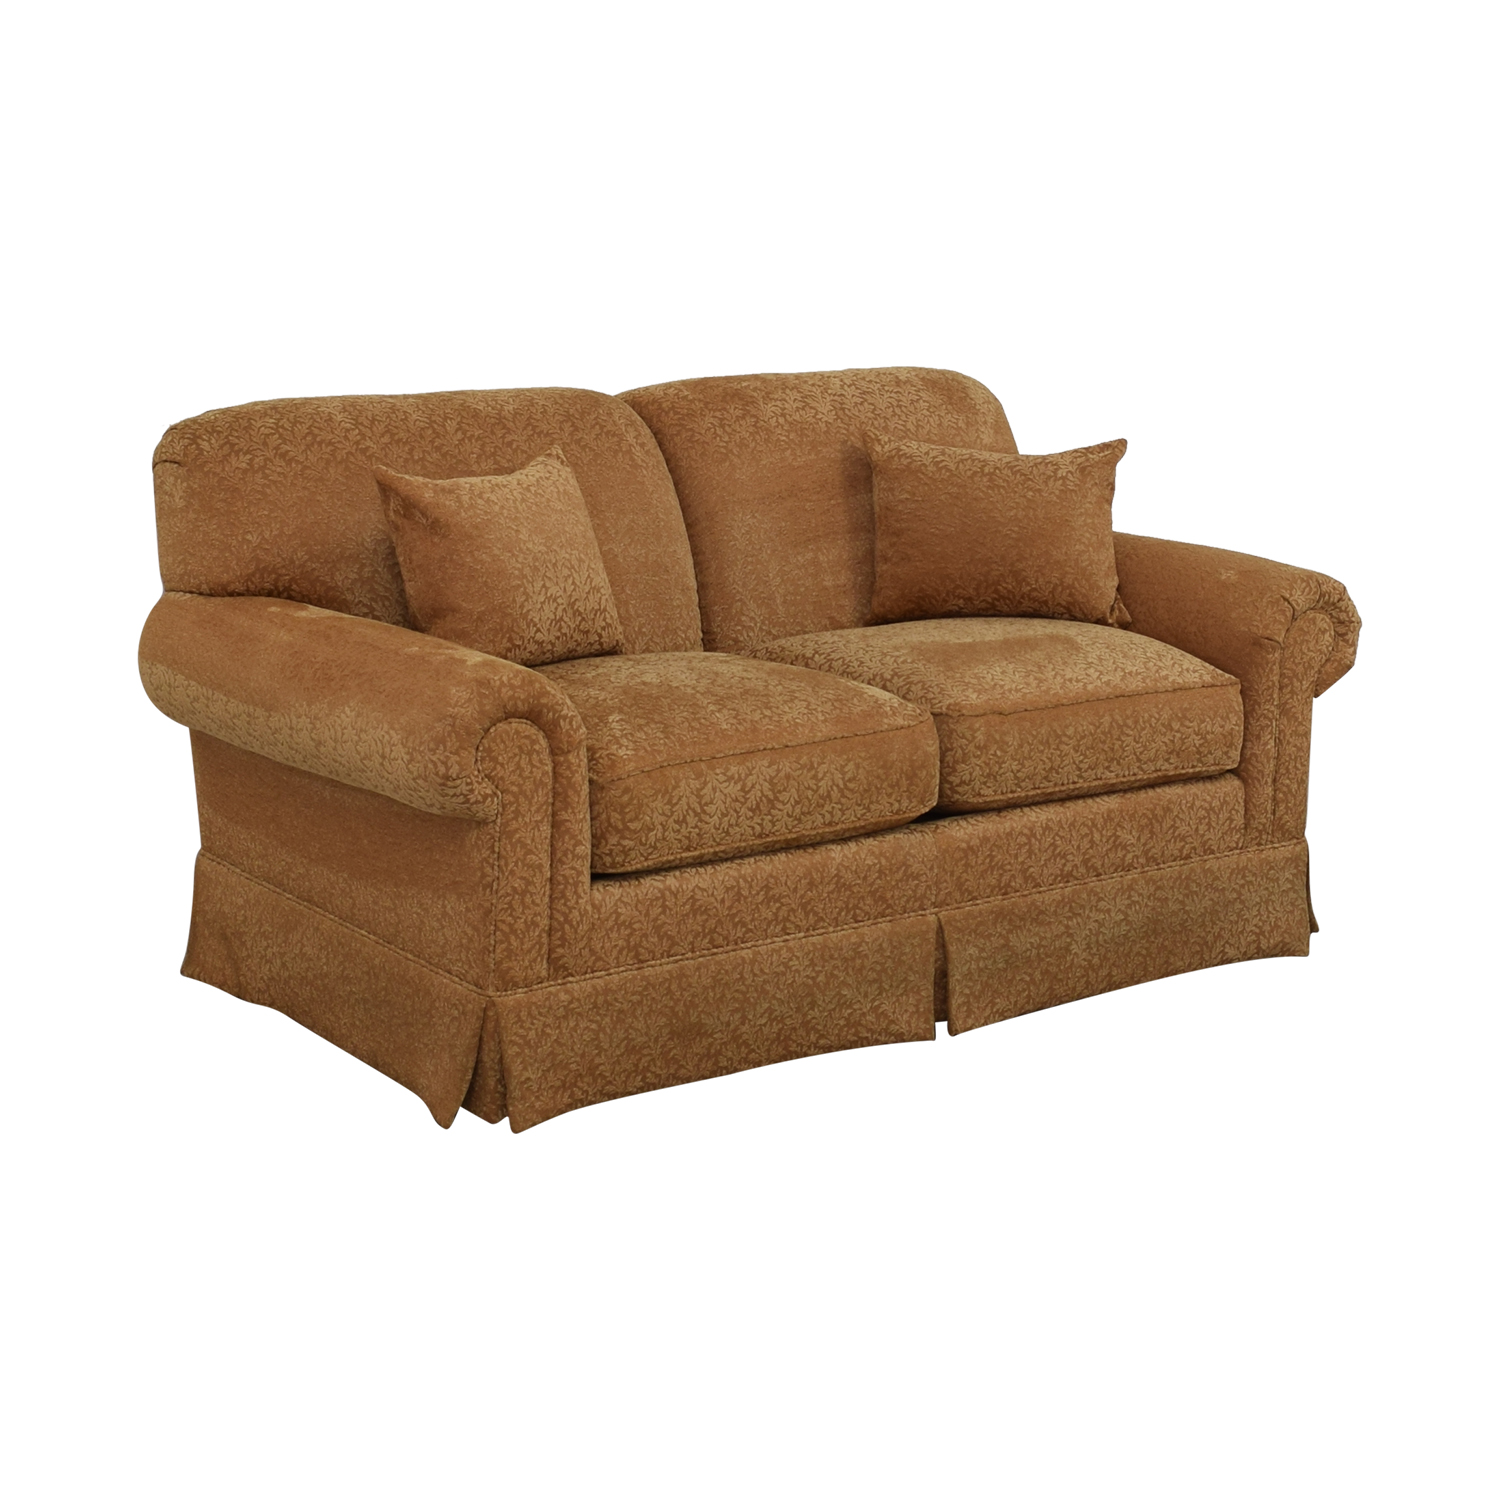 Thomasville Thomasville Lancaster Loveseat nj